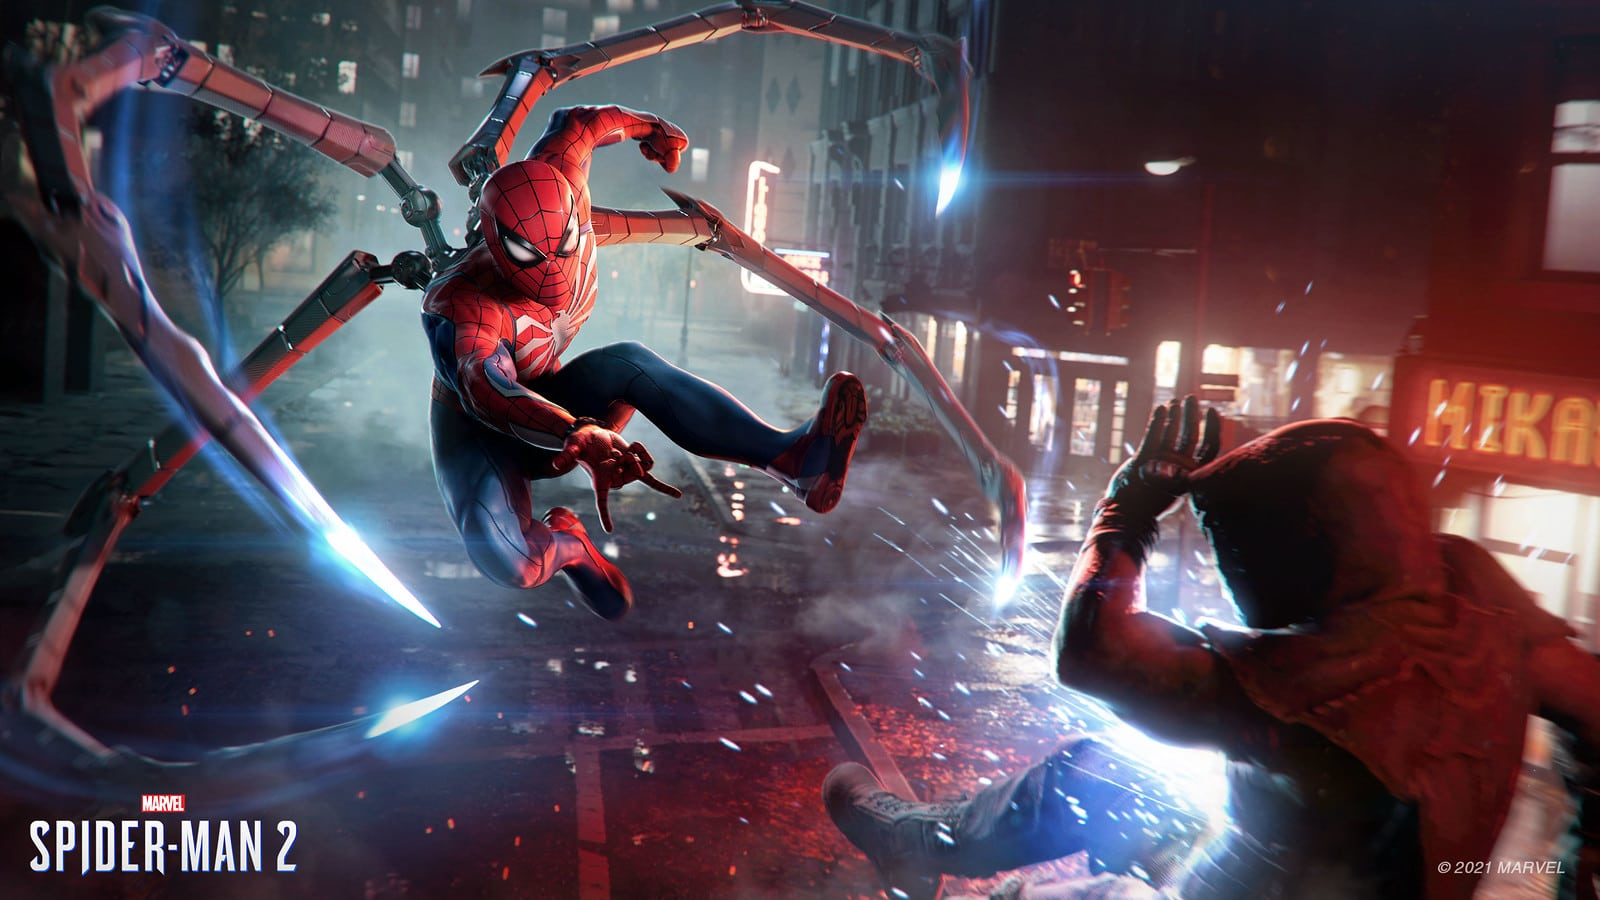 Marvel video games MCU taking over with Insomniac Games Spider-Man 2 Wolverine Midnight Suns, Square Enix Guardians of the Galaxy, not Avengers Marvel's